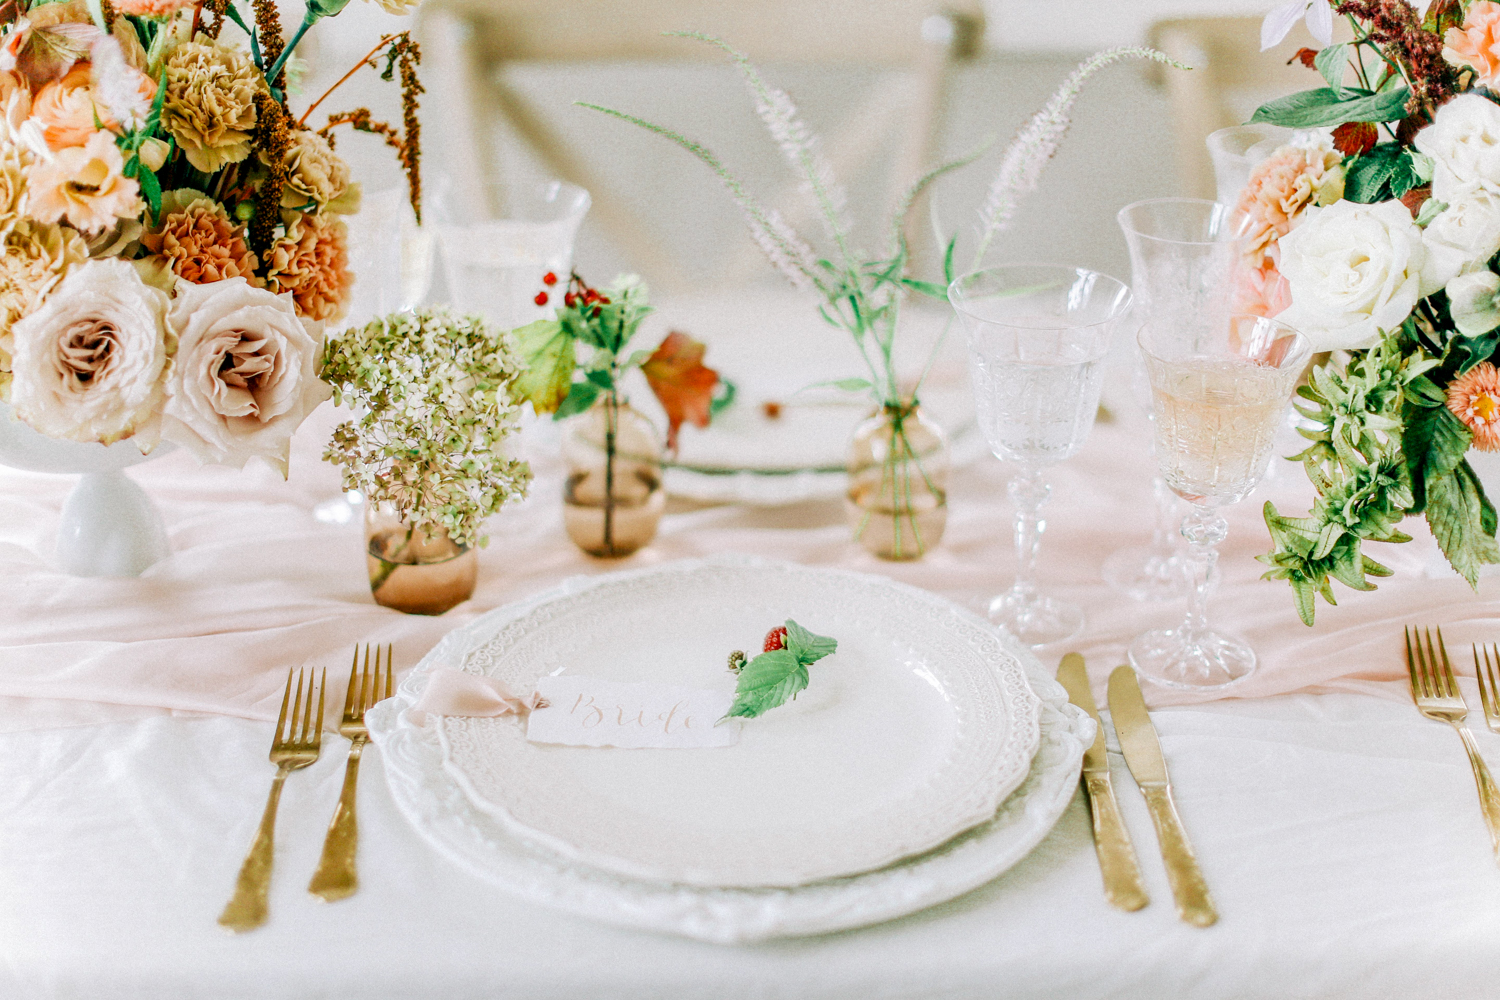 Wedding Flowers Table Set up with Transparent and White Porcelain Vases